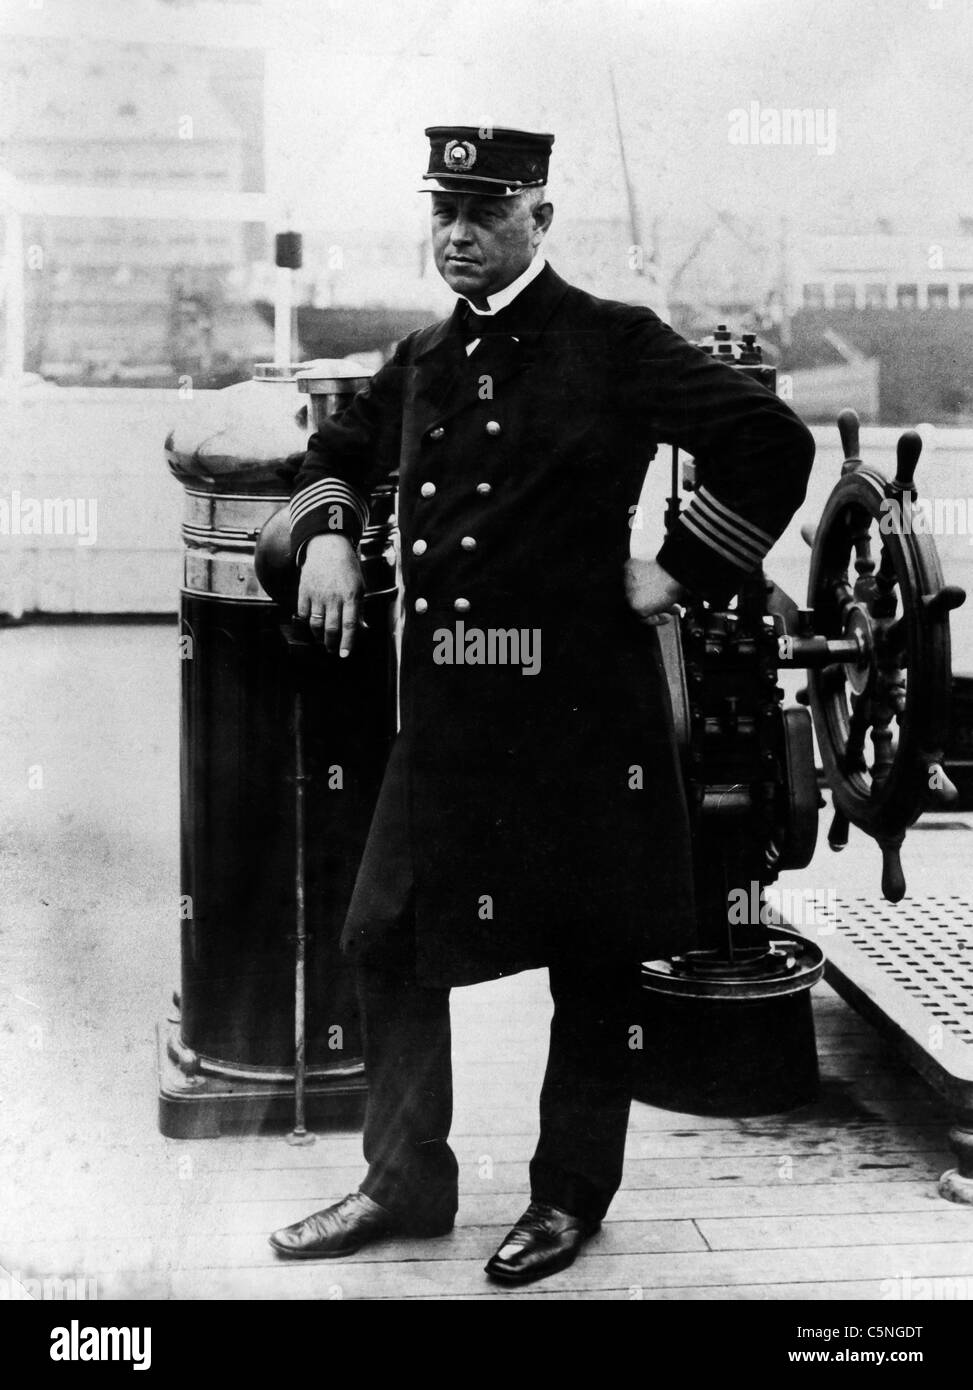 the commander of the Sealand, the first ship built with a diesel engine, Copenhagen, 1912 - Stock Image